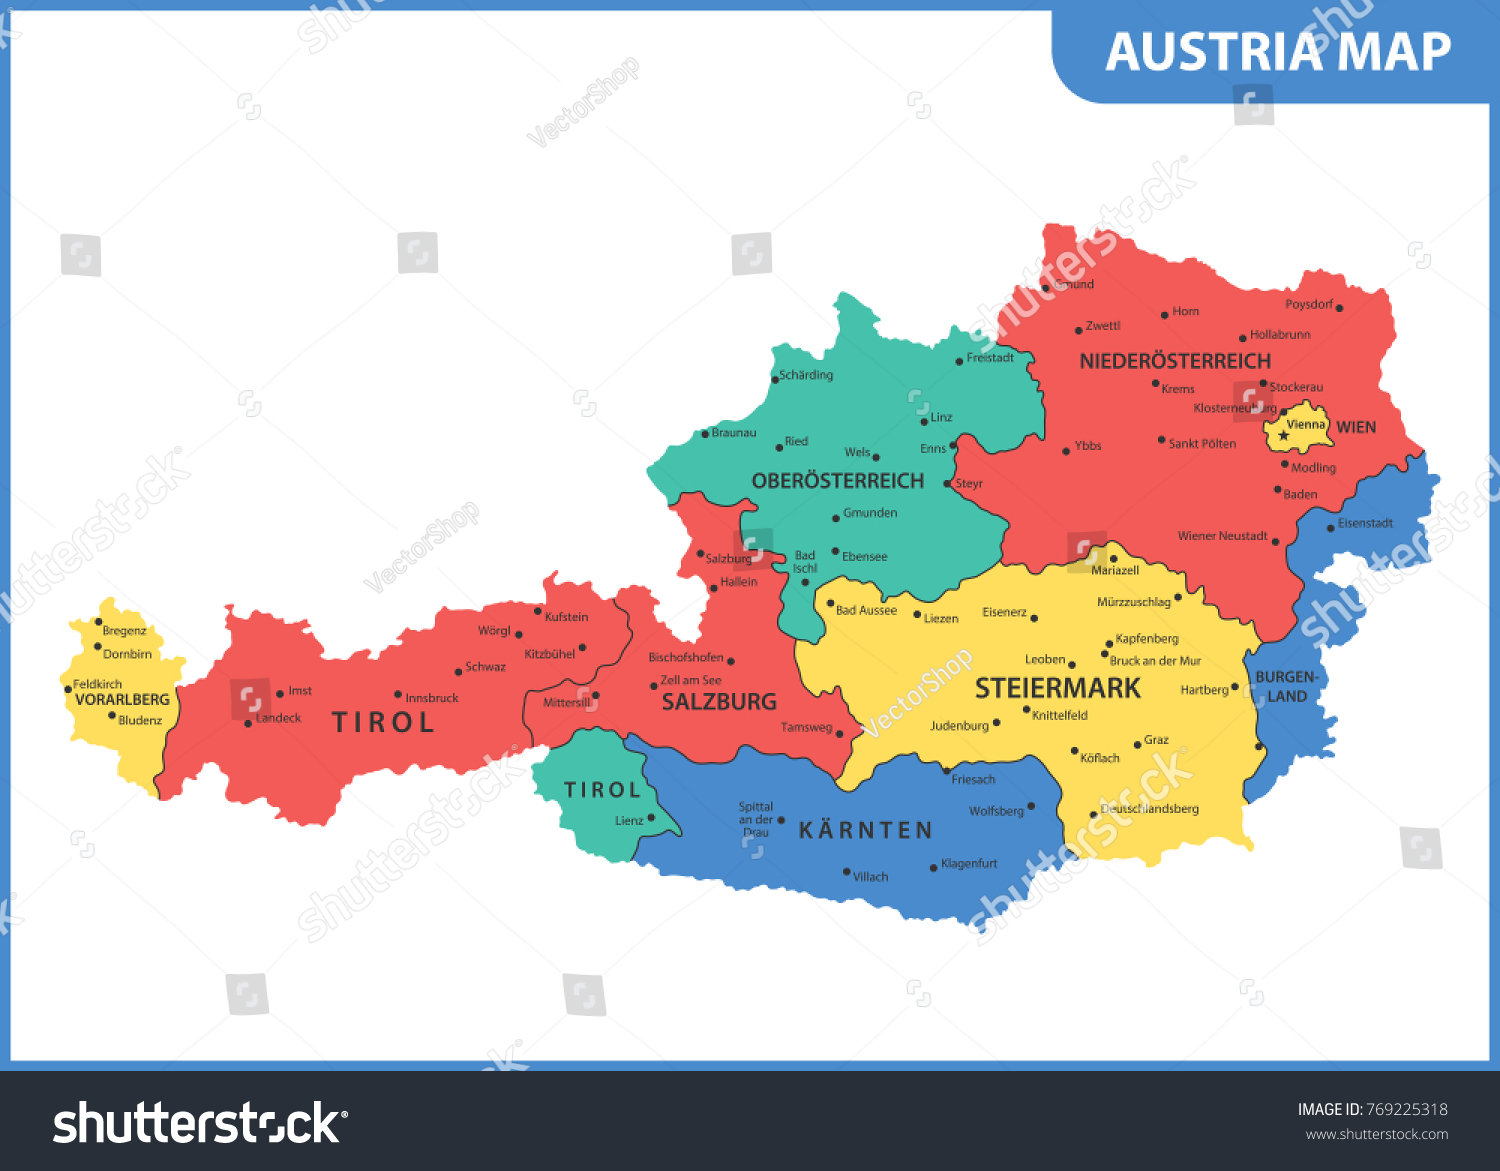 Detailed Map Austria Regions States Cities Stock Vector 769225318